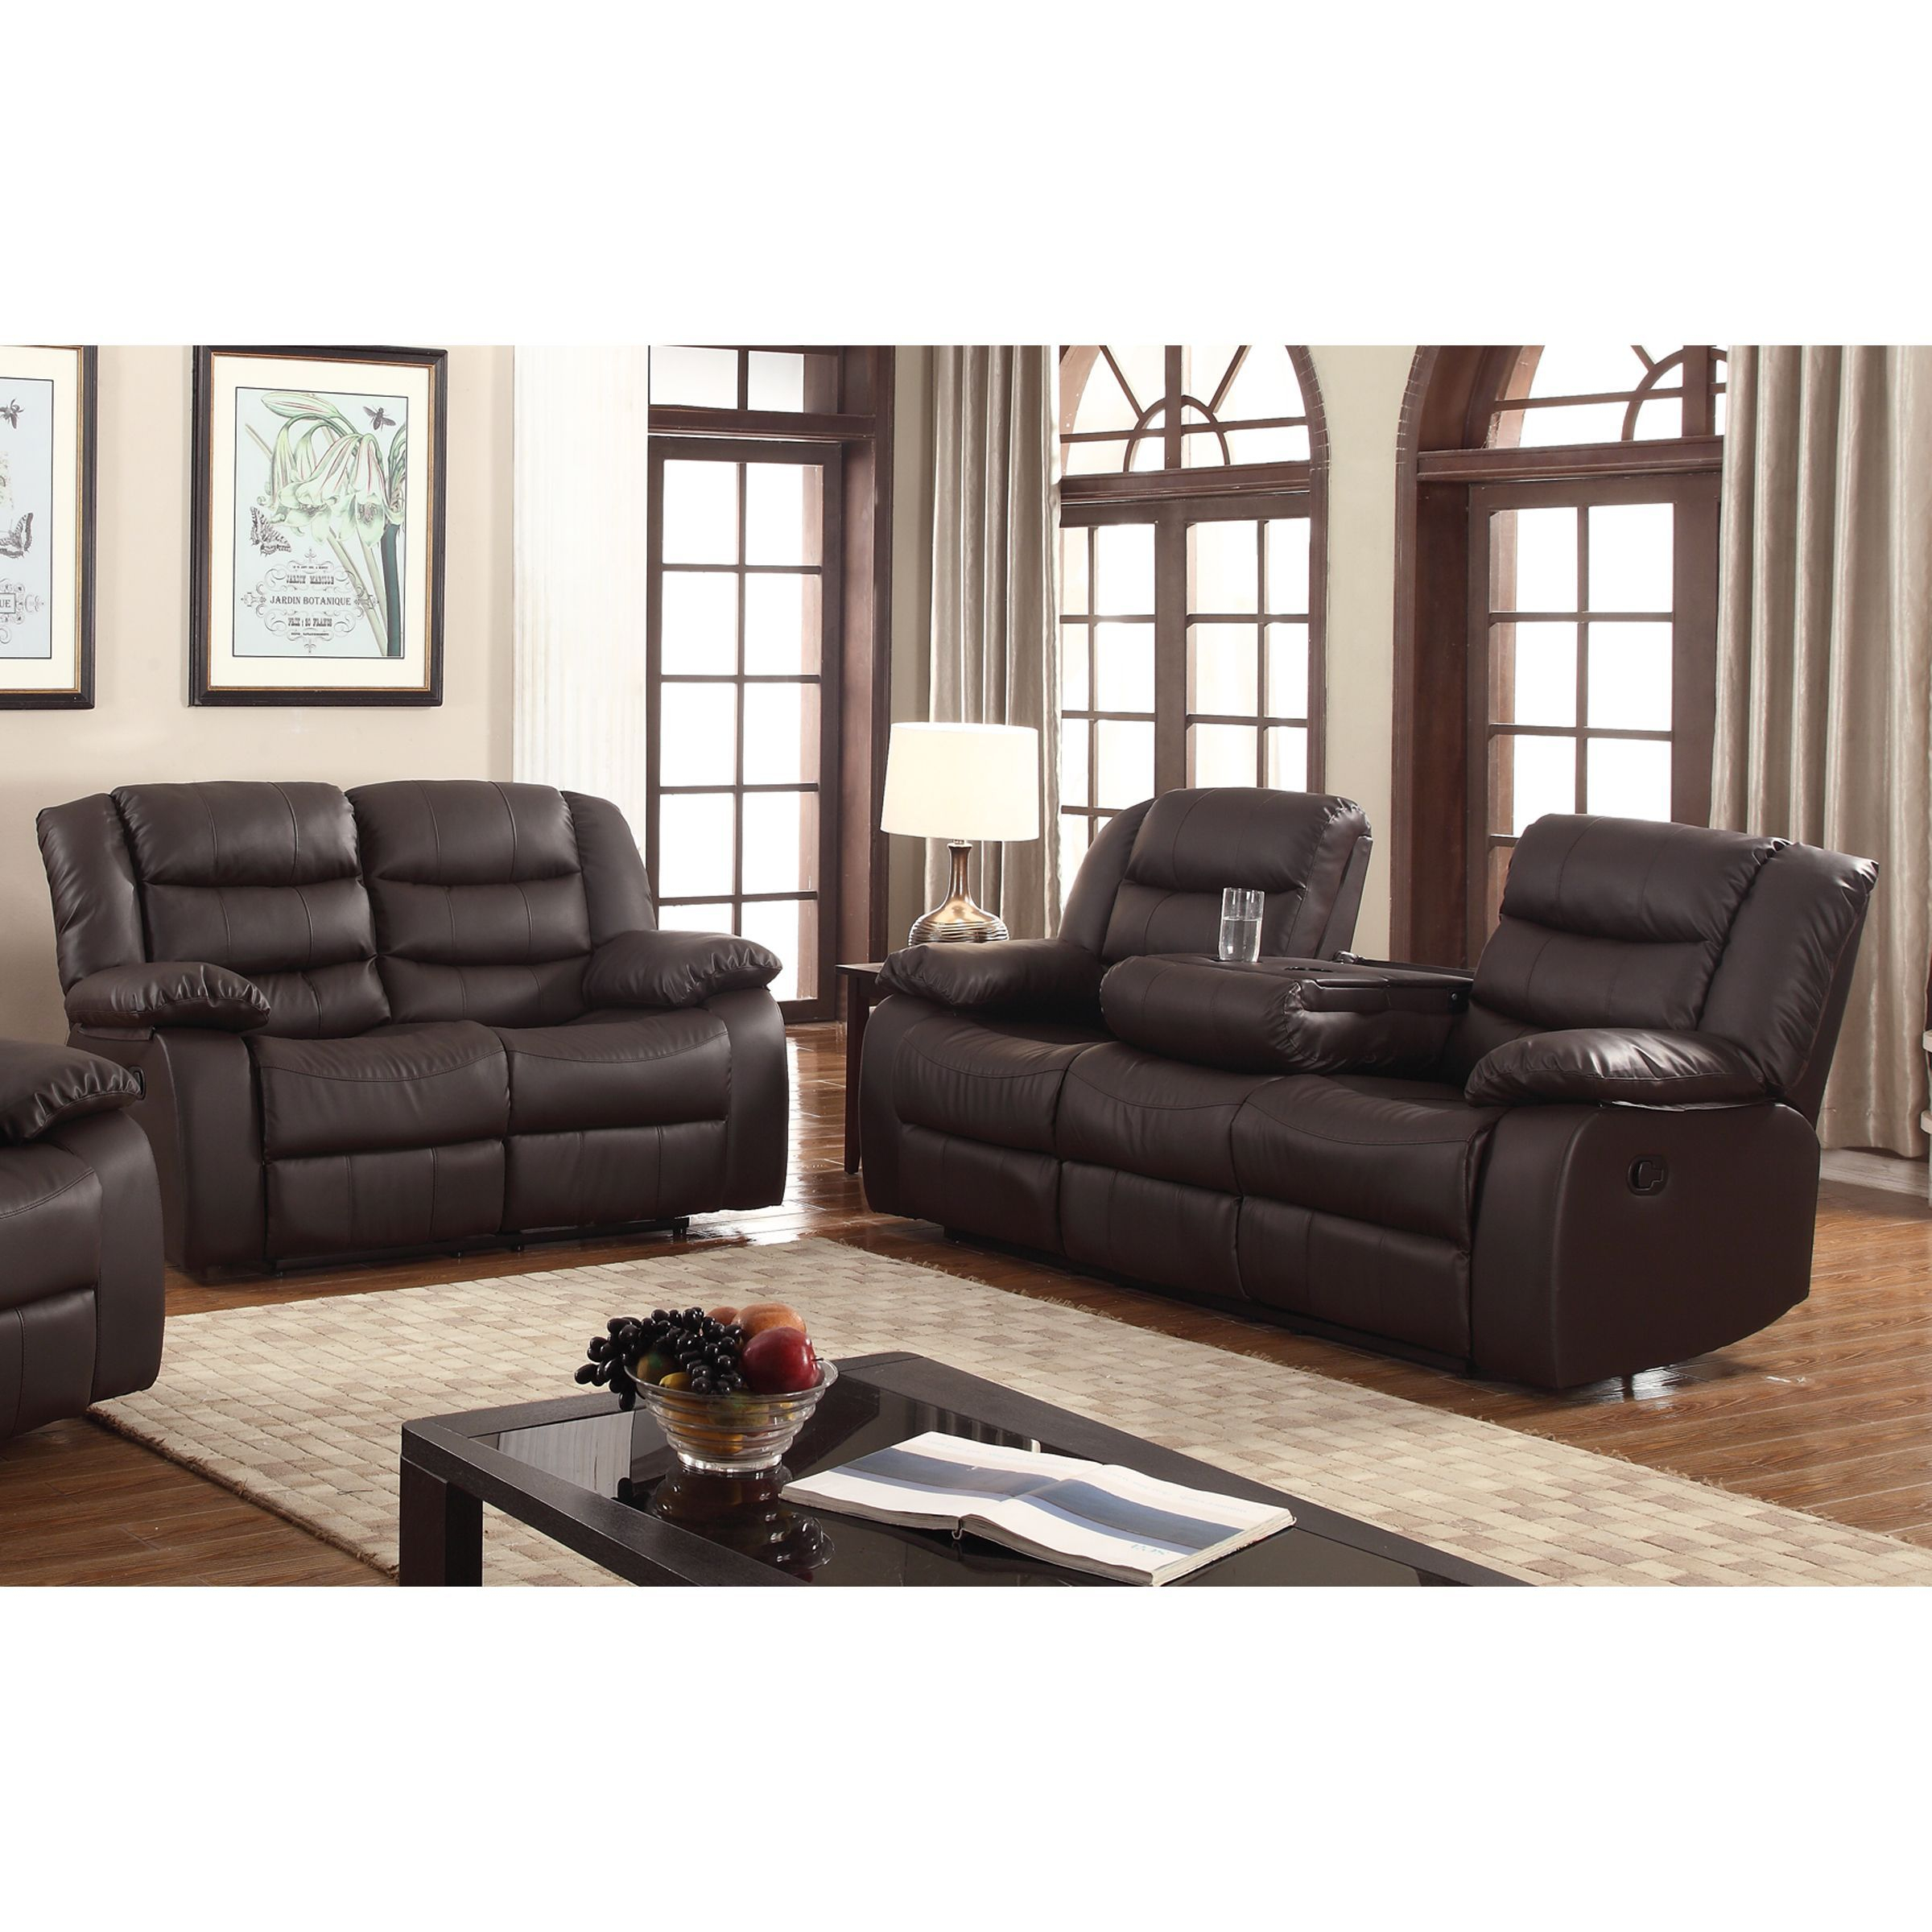 Gloria Faux Leather 2 Piece Reclining Living Room Set Dark Brown with Faux Leather Living Room Set